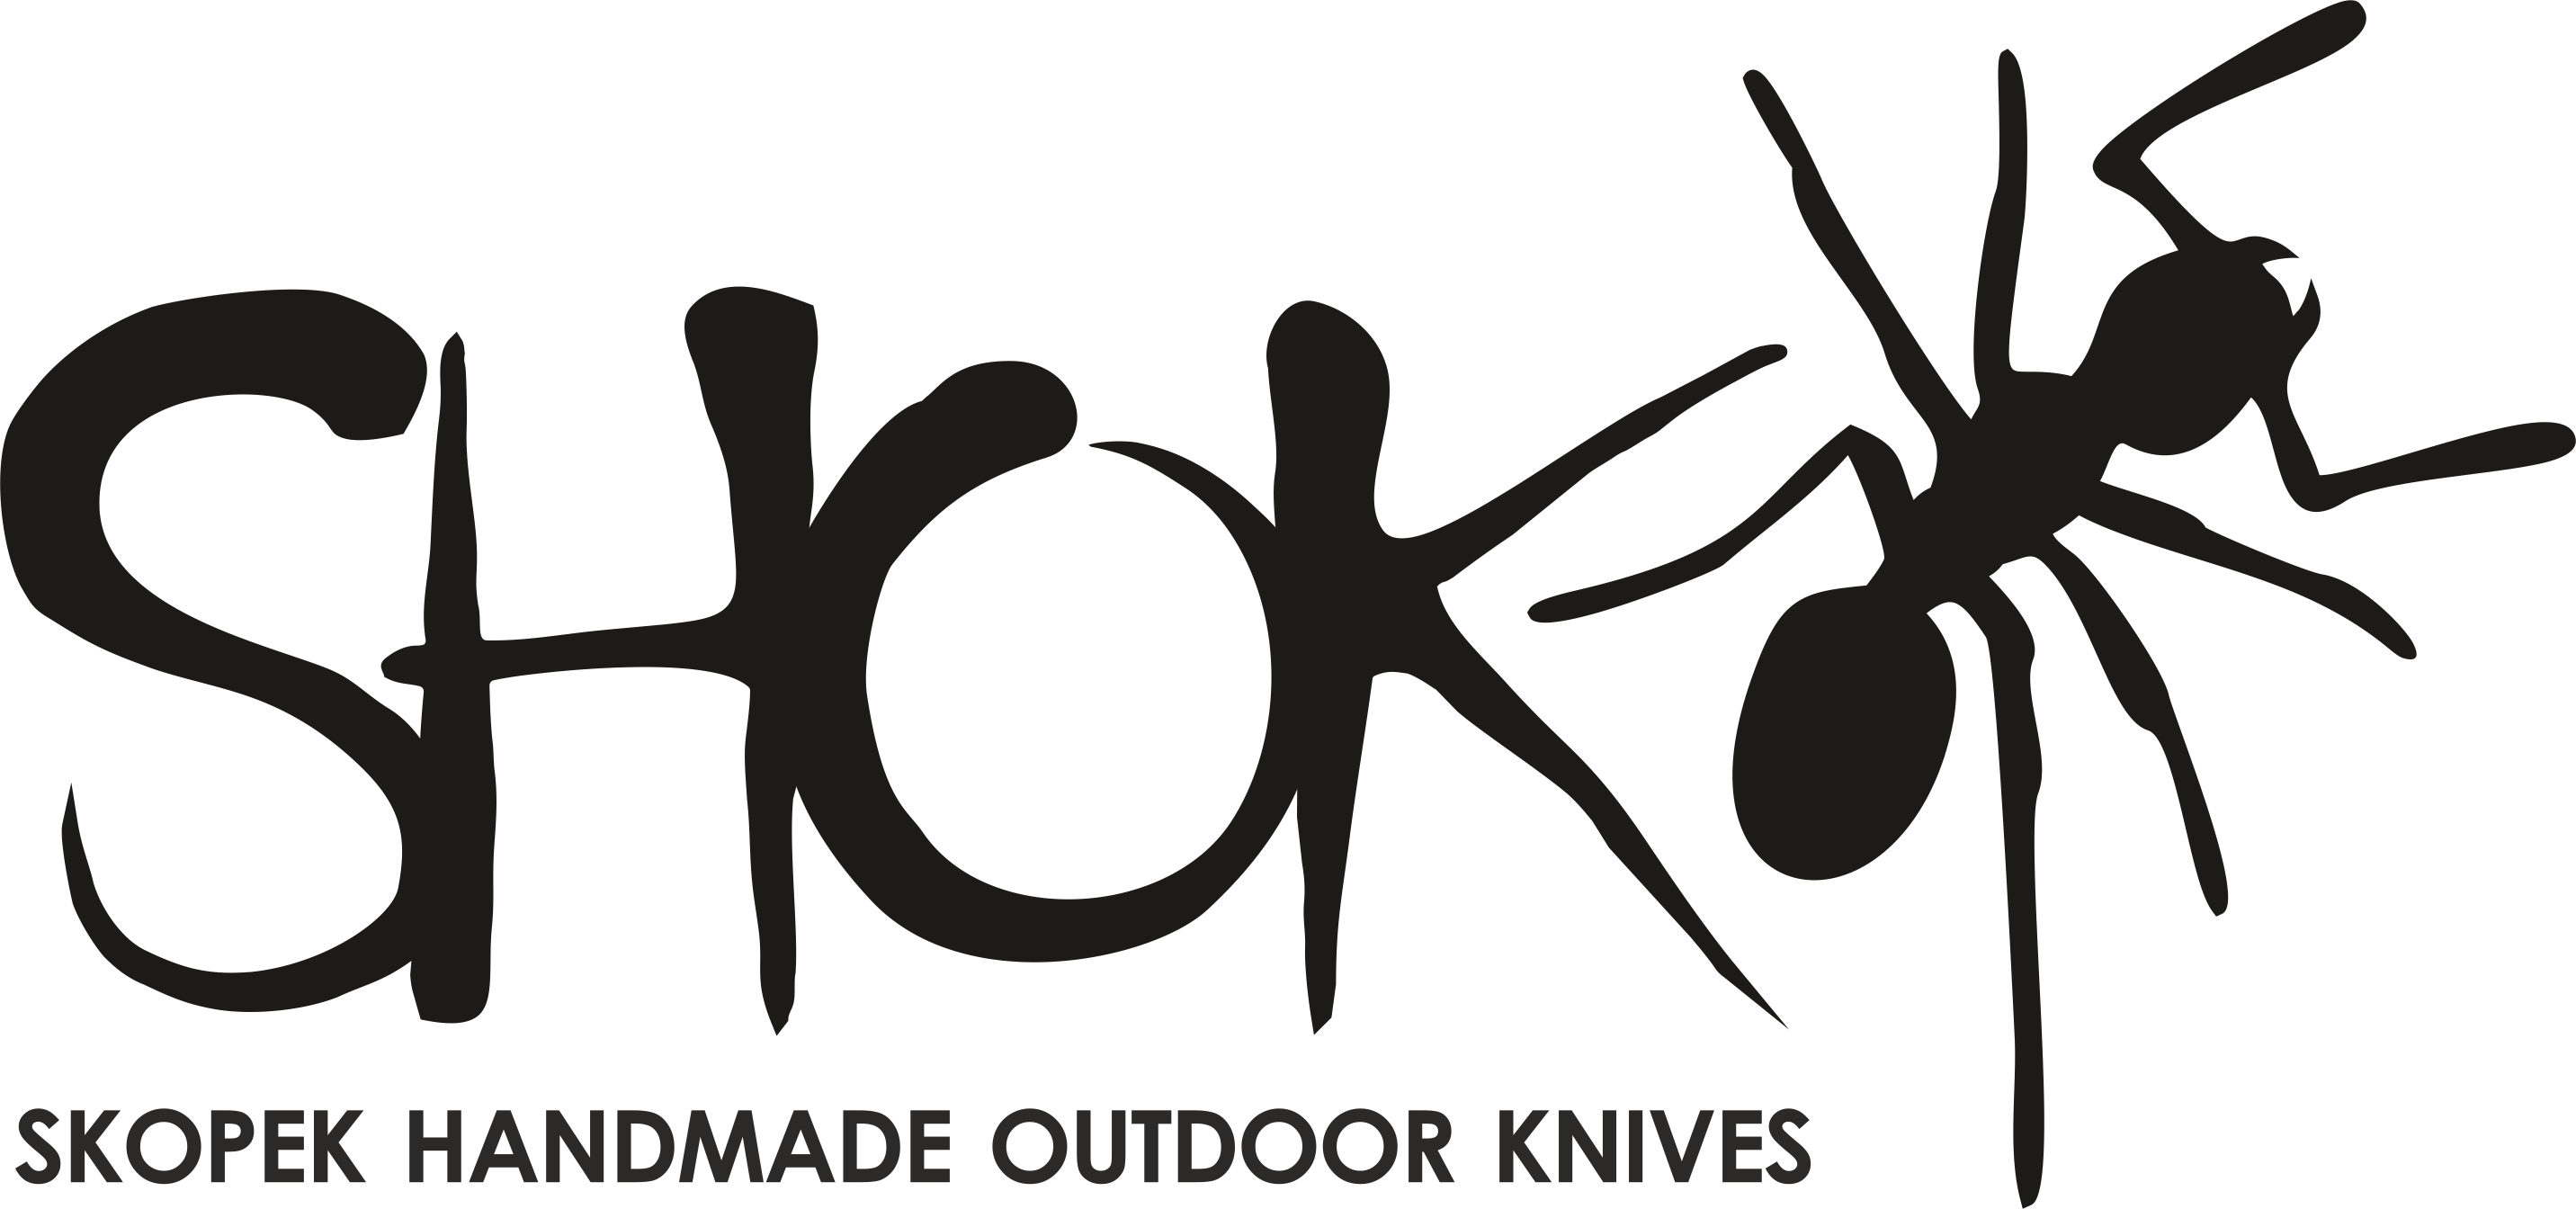 Skopek Handmade Outdoor Knives